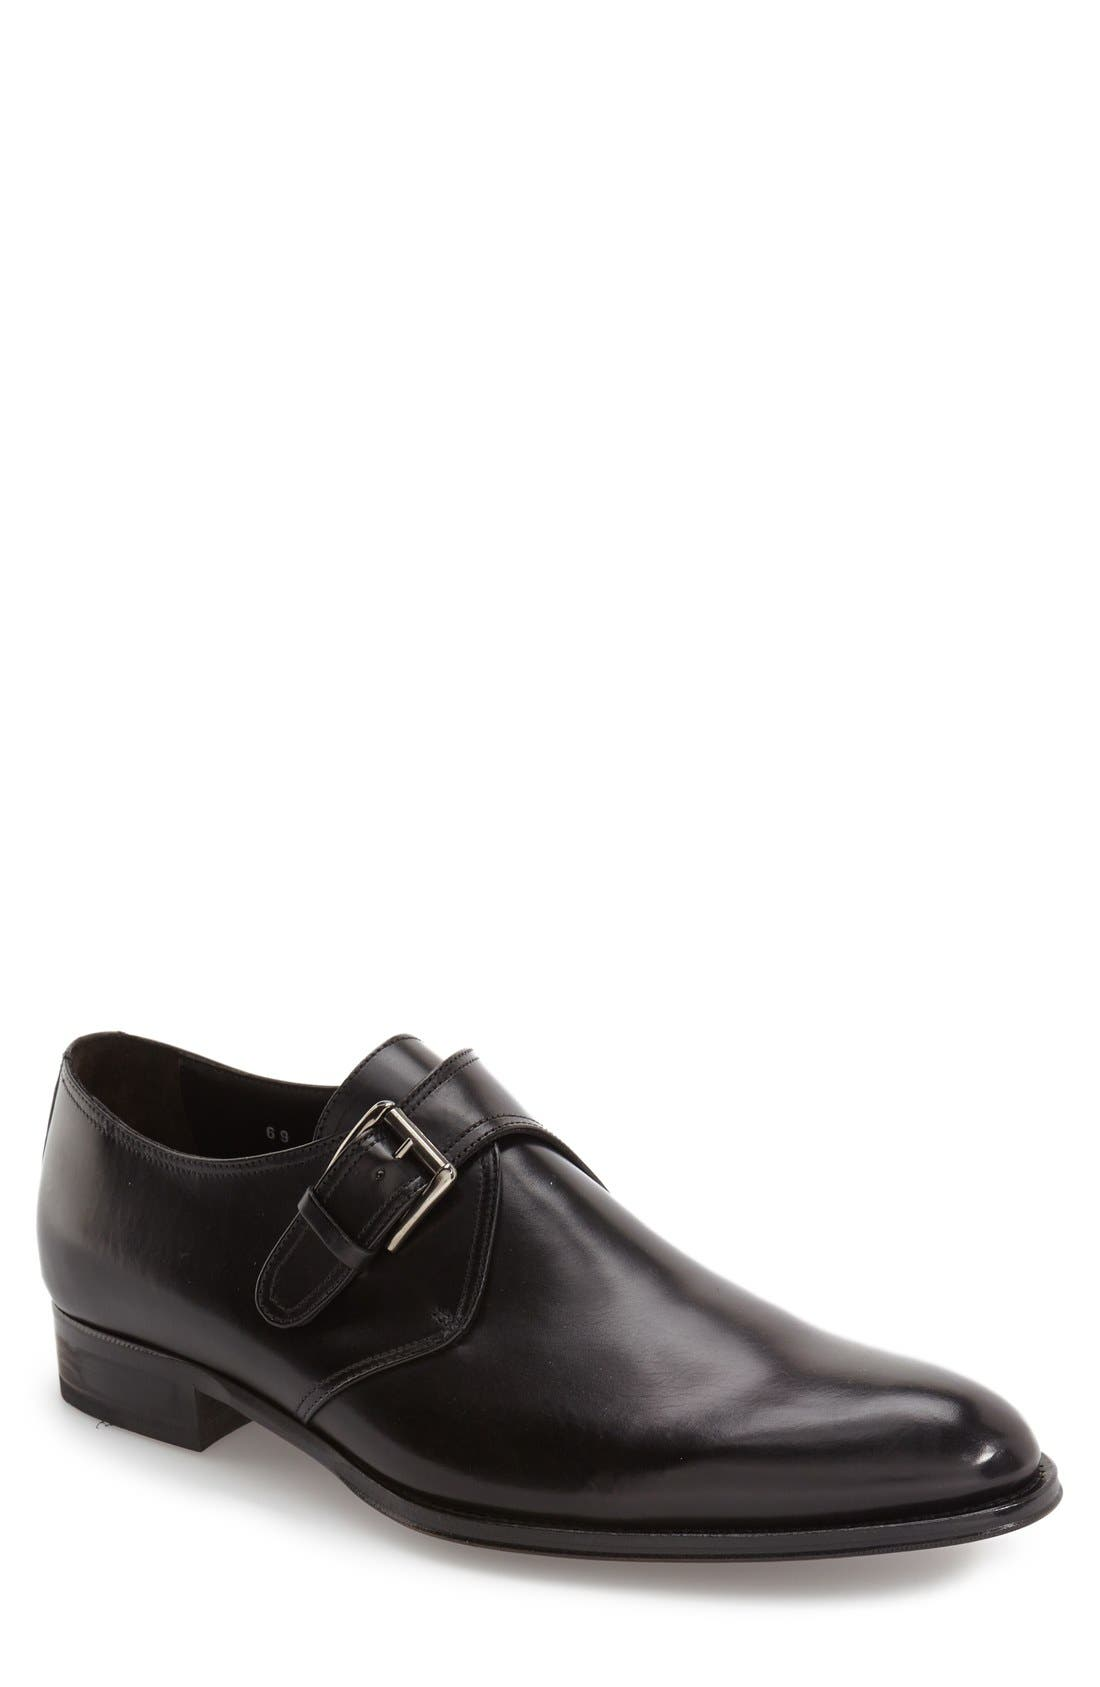 TO BOOT NEW YORK, Emmett Monk Strap Shoe, Main thumbnail 1, color, BLACK LEATHER